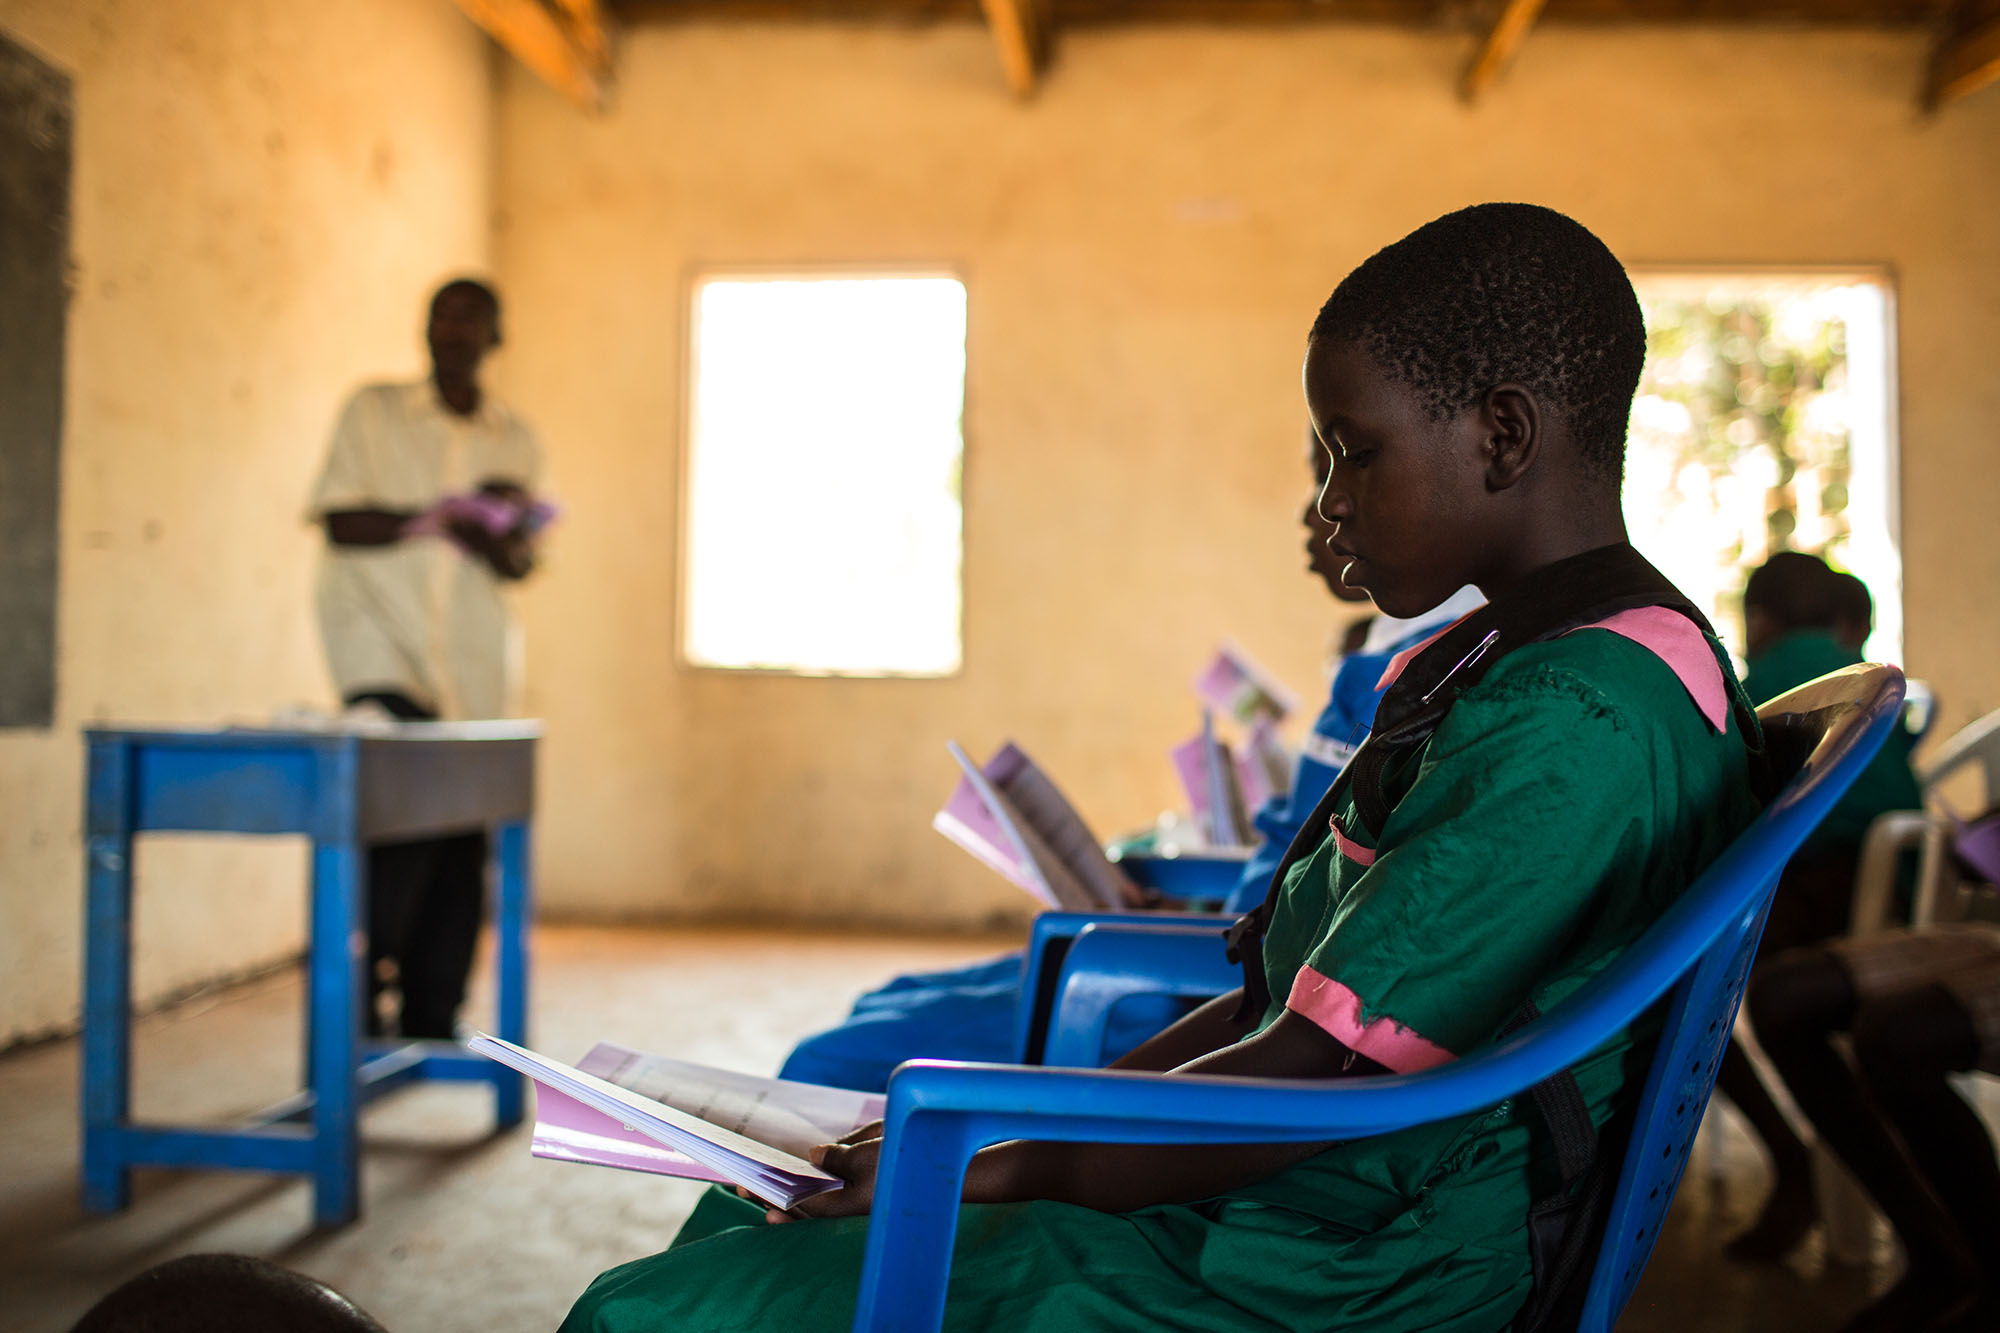 Wilfred's daughter, Joyce Wilfred, attends school near her house. Her dream is to become a nurse.Photo by Morgana Wingard.